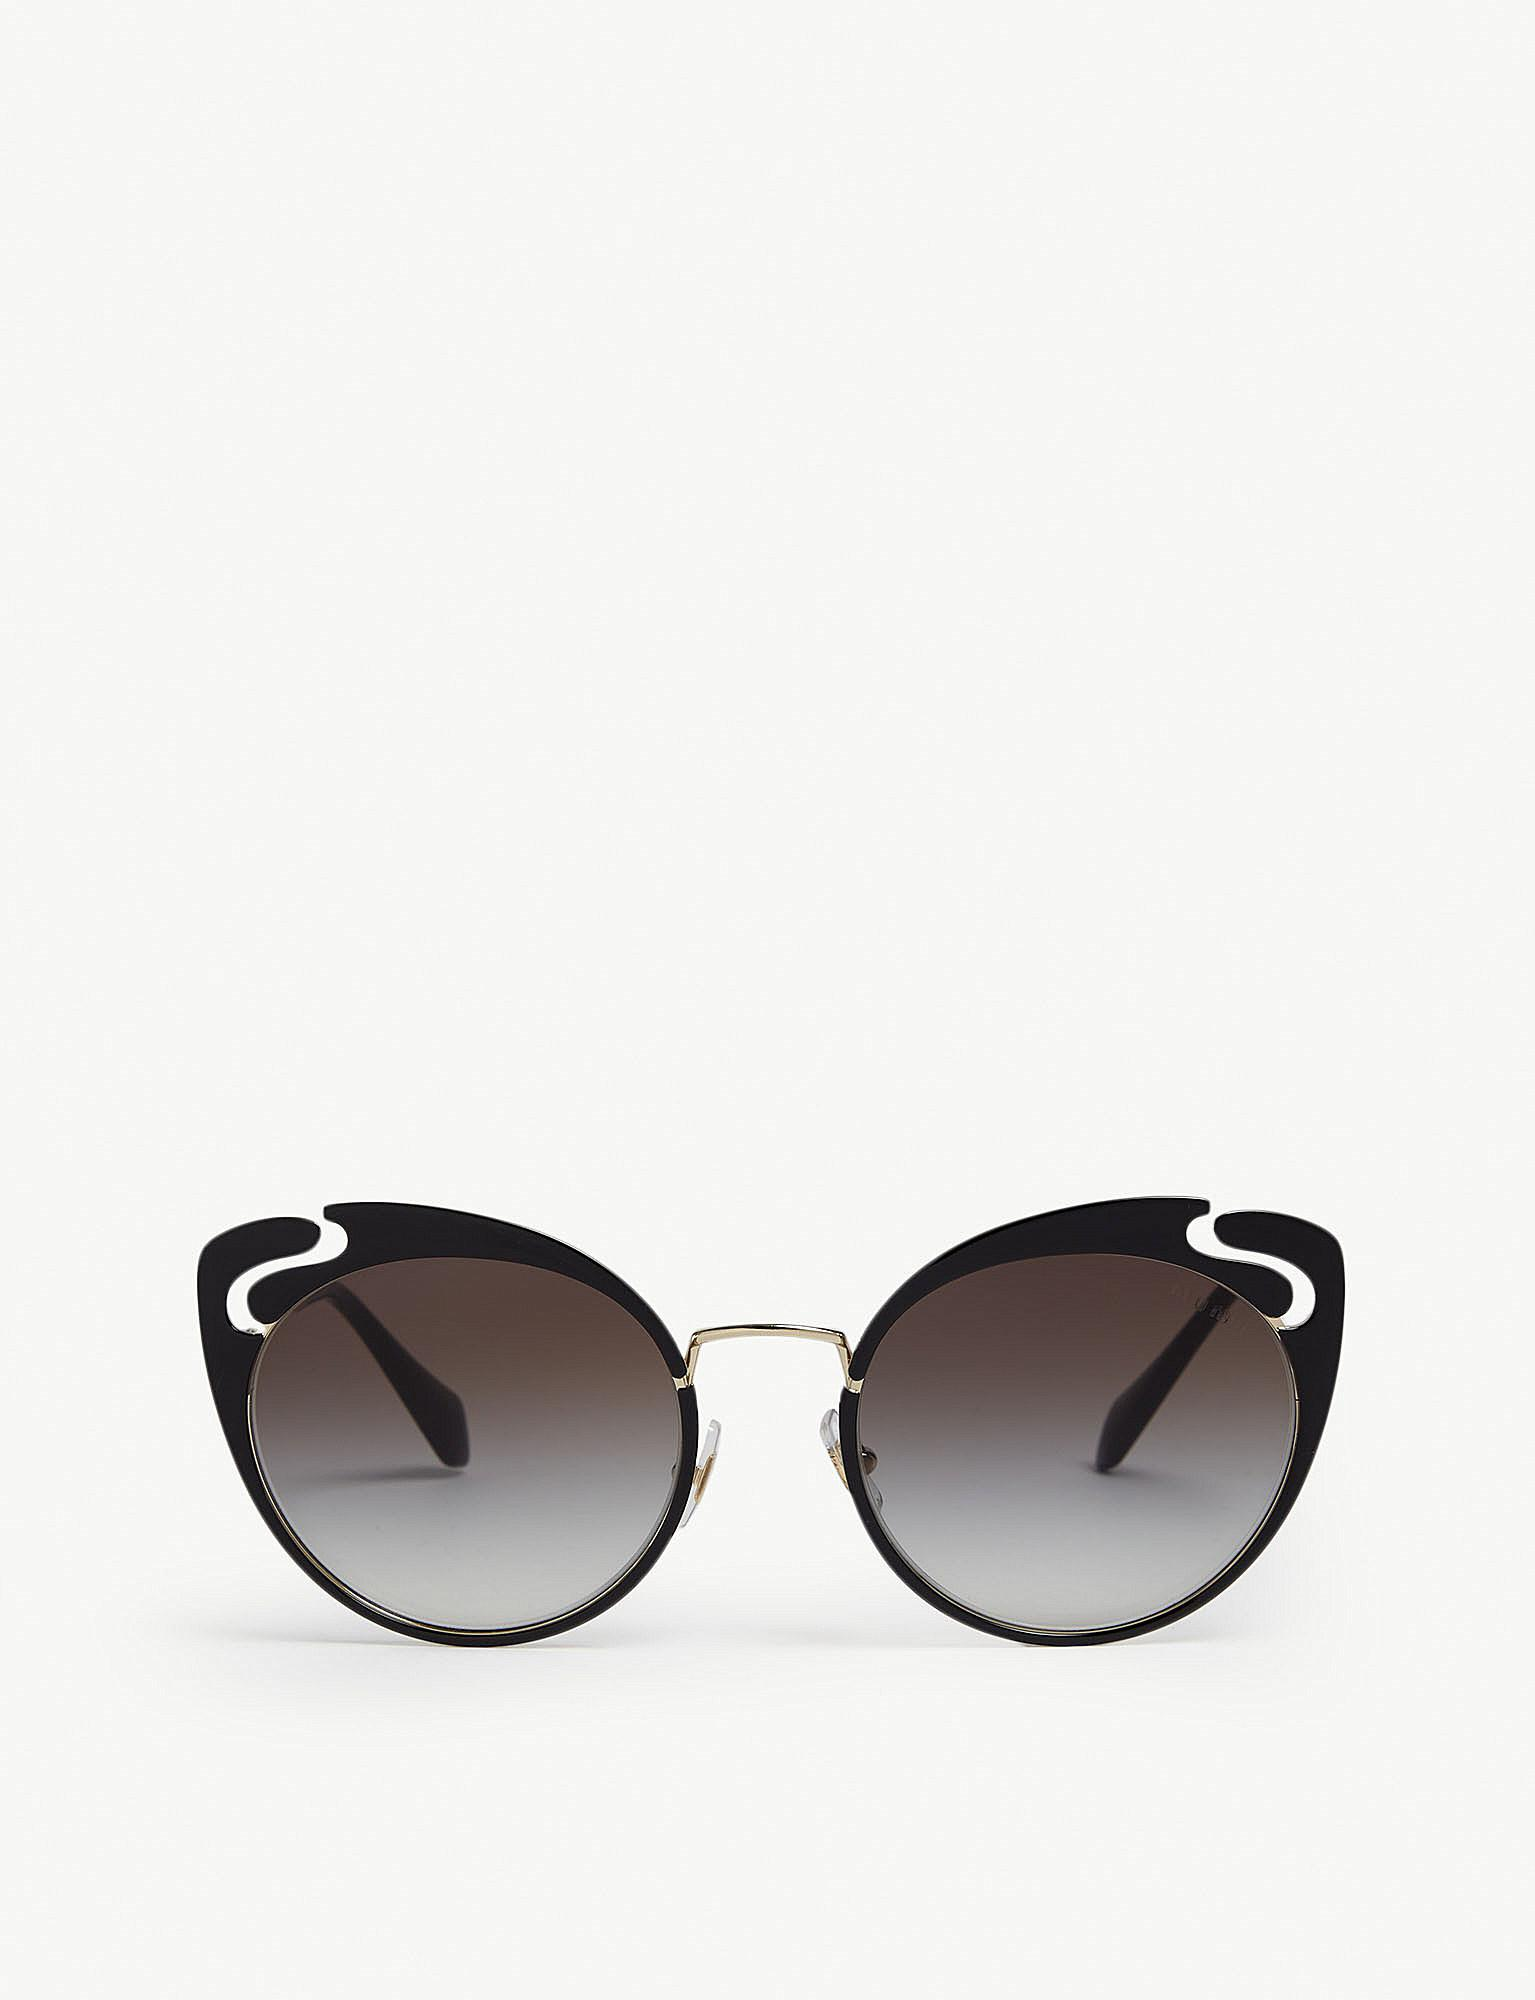 ae70c461f9 Lyst - Miu Miu 0mu 57ts Butterfly Sunglasses in Black